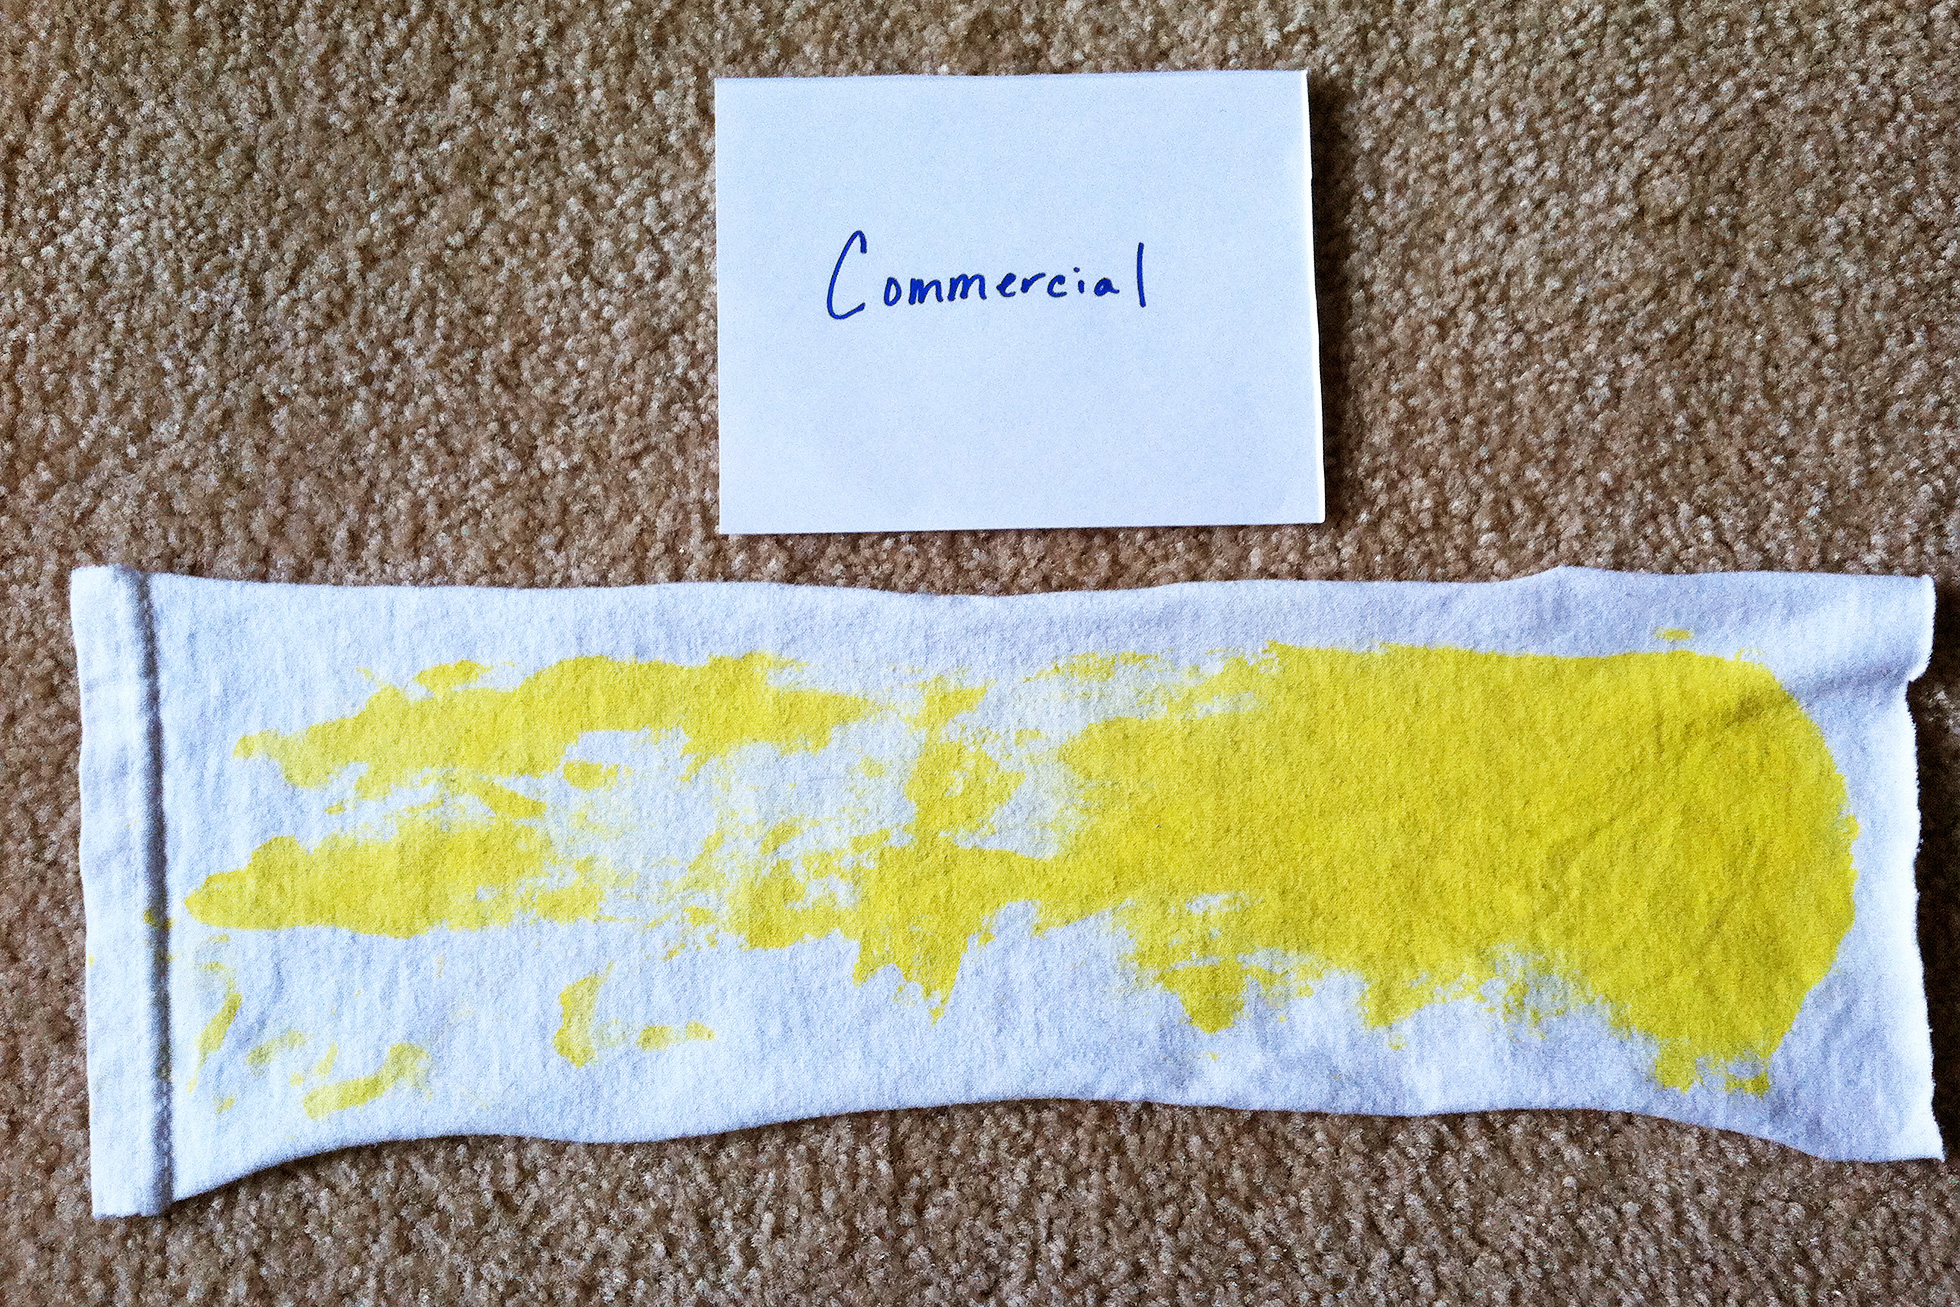 Test strip after washing with commercial laundry detergent